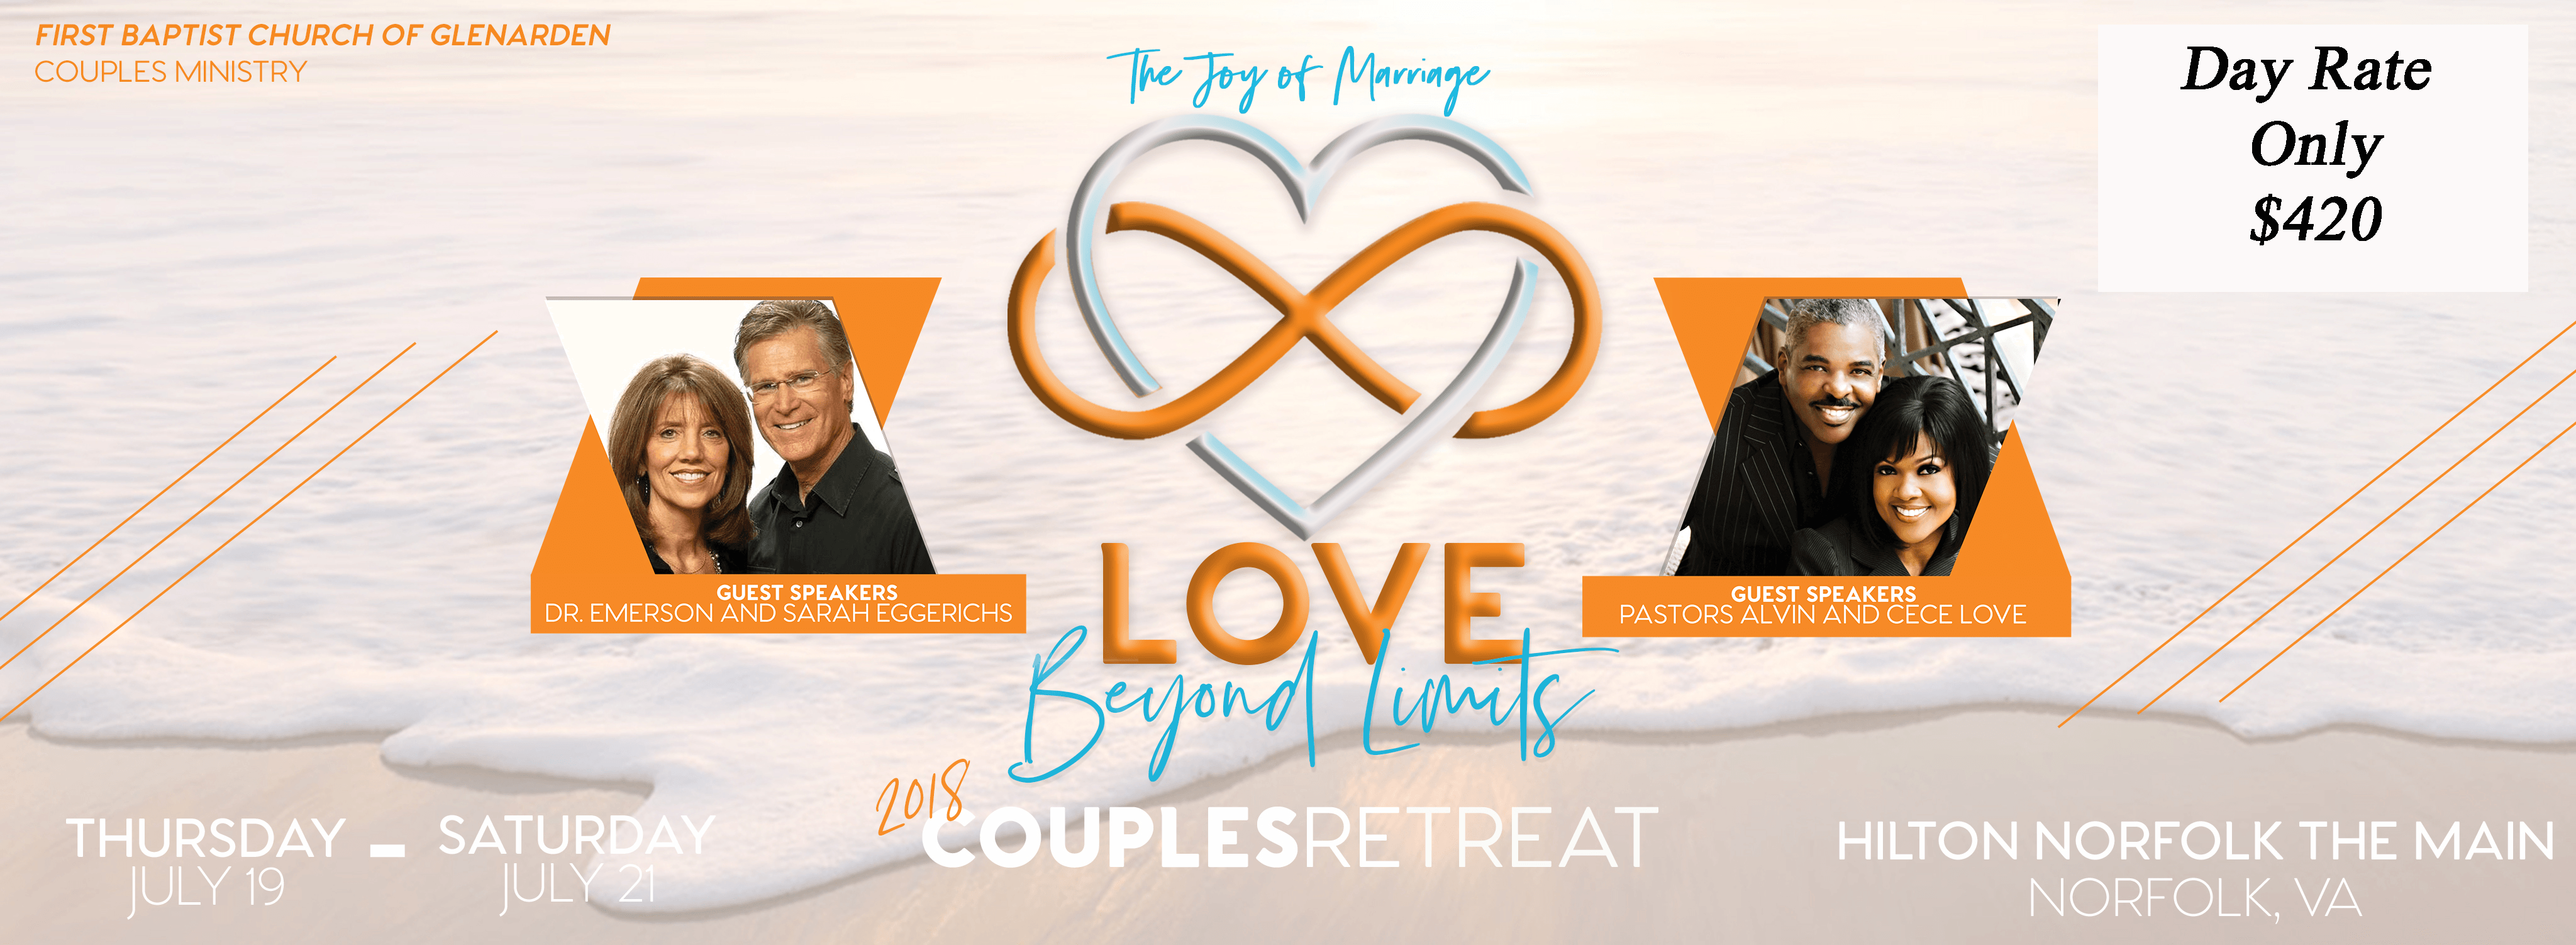 FBCG Couples Retreat 2018